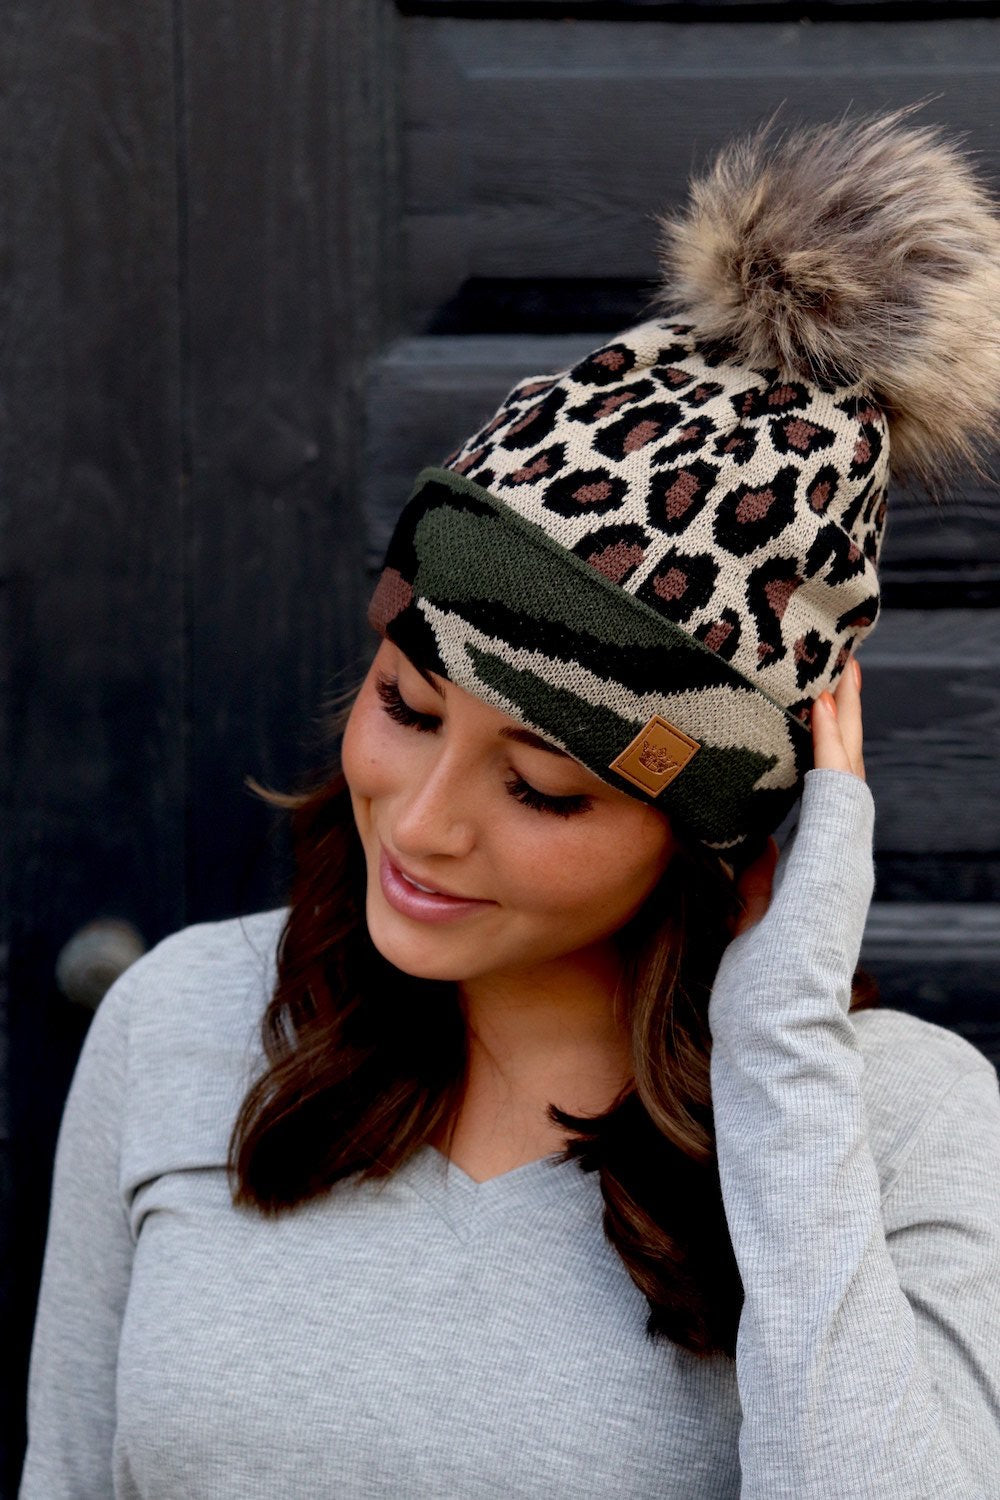 Camo & Leopard Beanie - This & That Boutique Shop